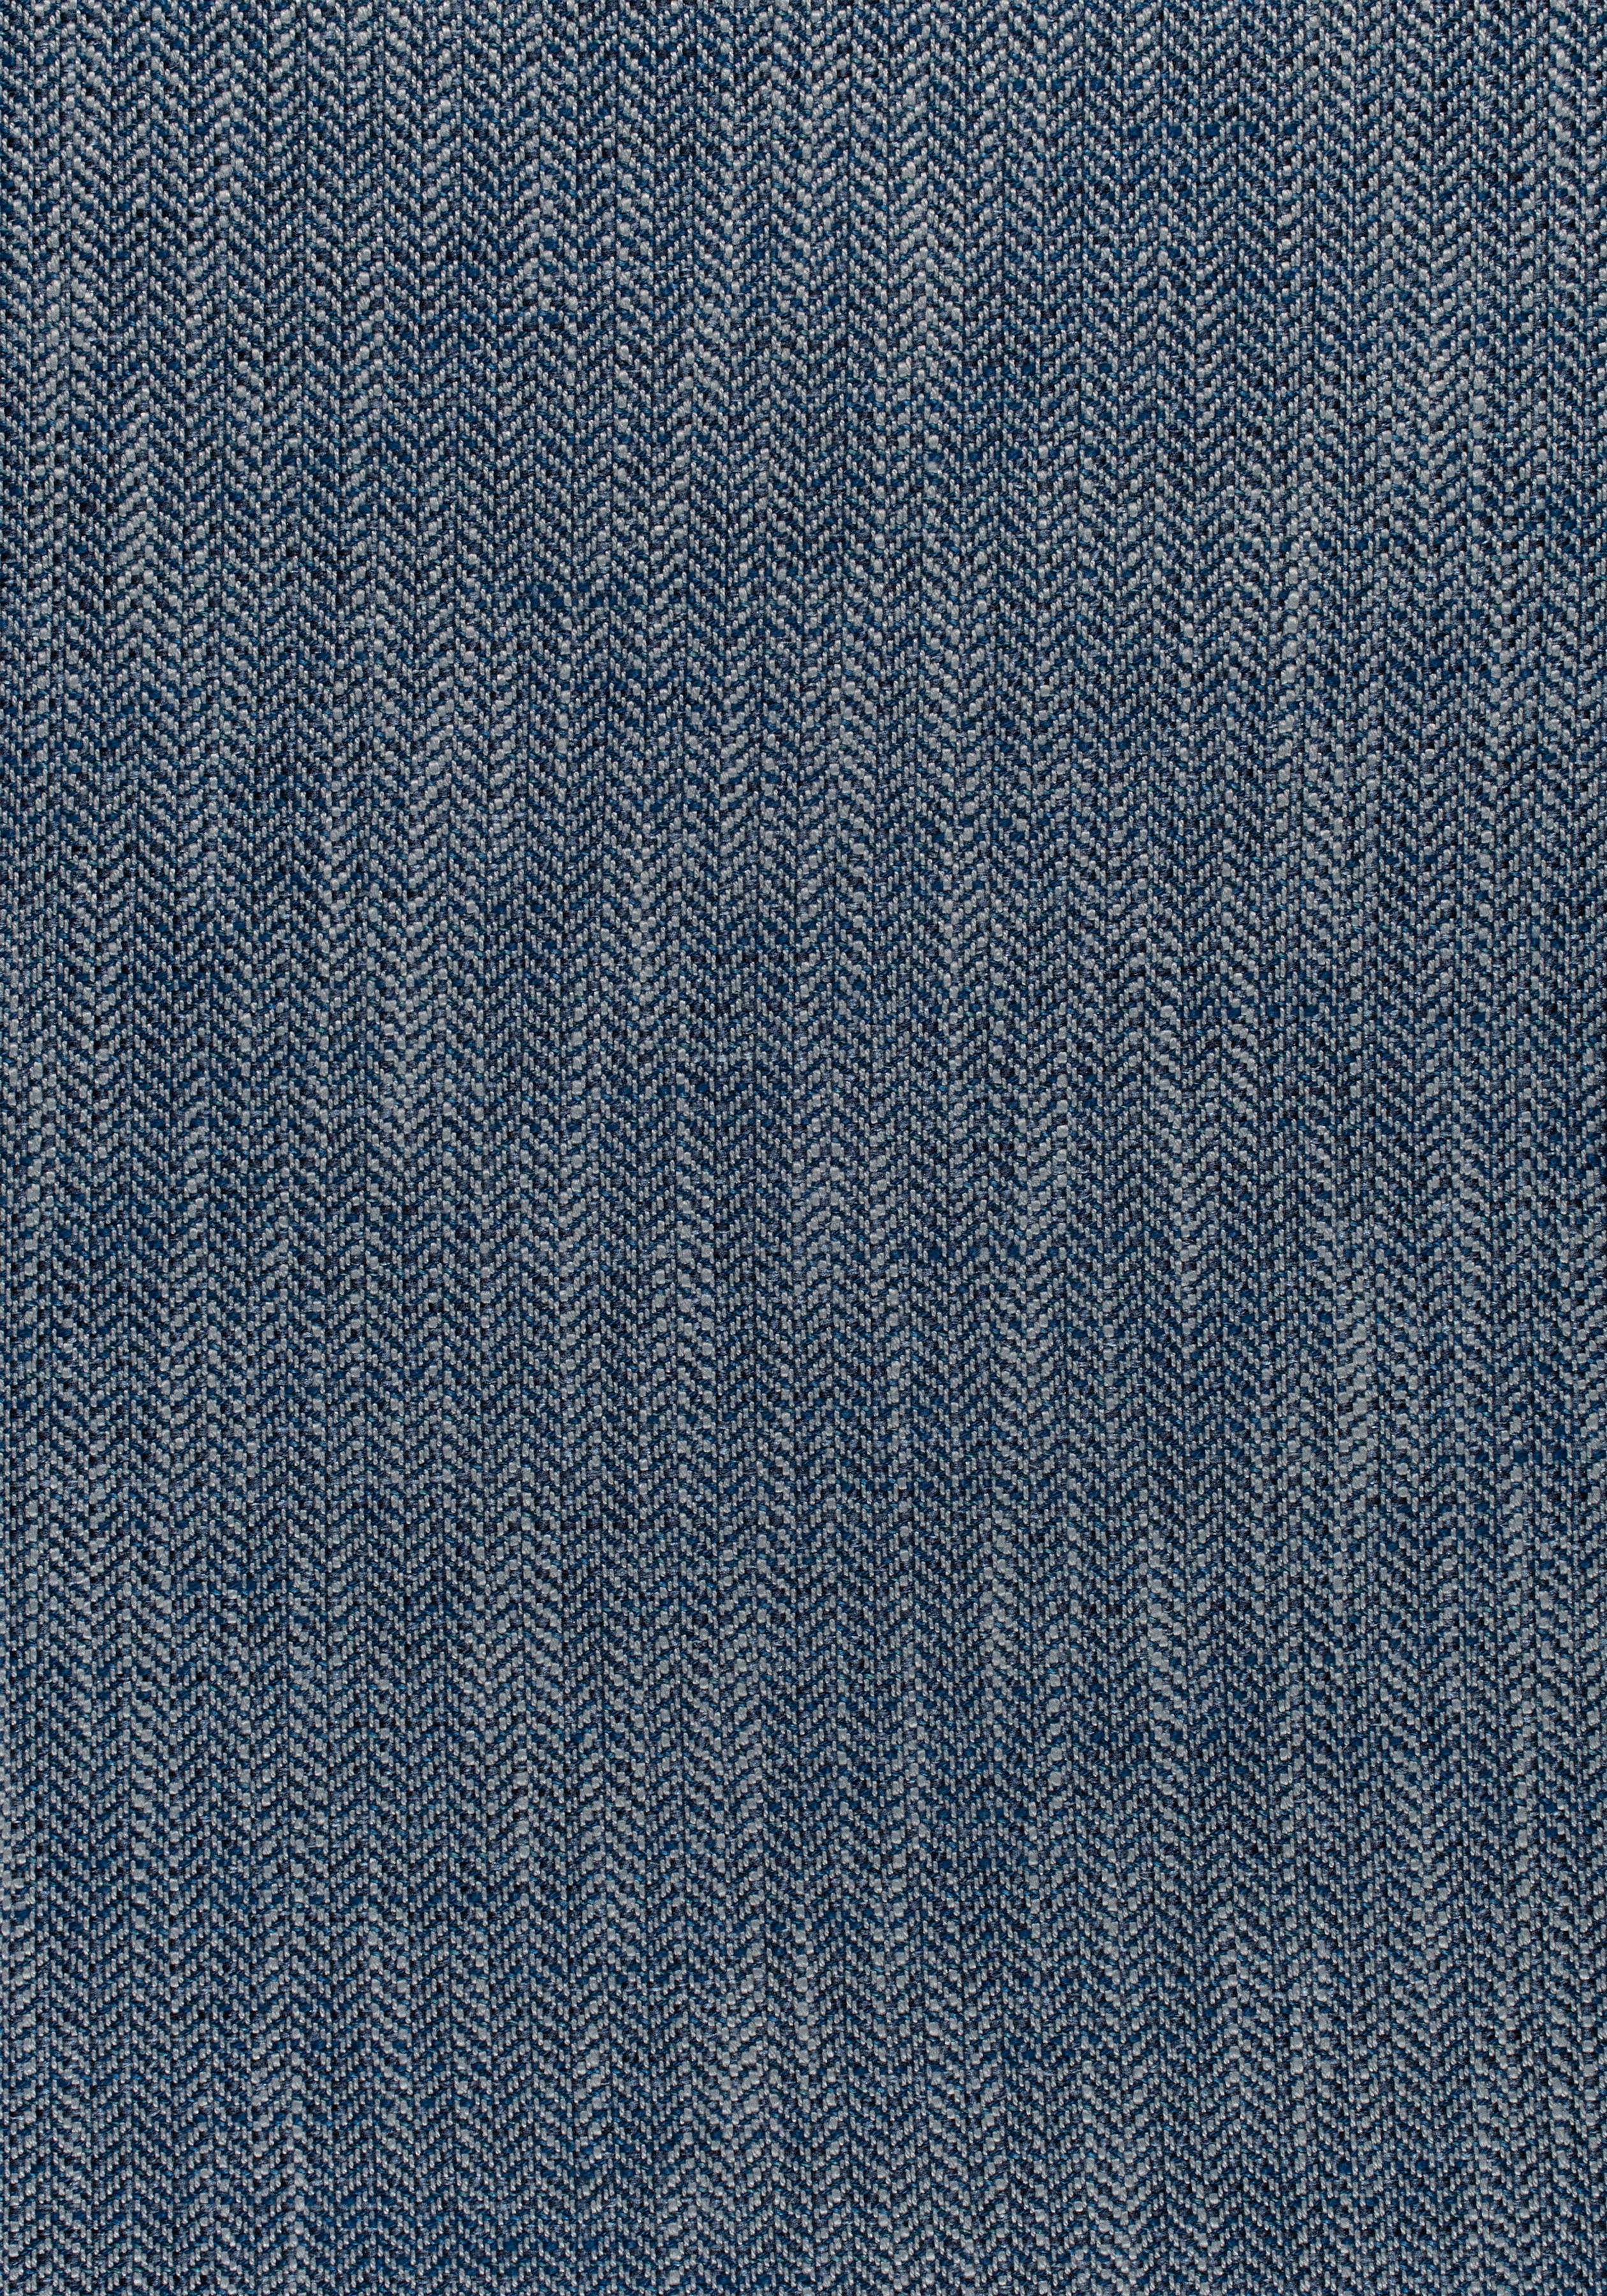 Ashbourne Tweed Denim W80614 Collection Pinnacle From Thibaut This Is A Great Fabric Too Pillow Texture Herringbone Wallpaper Carpet Fabric